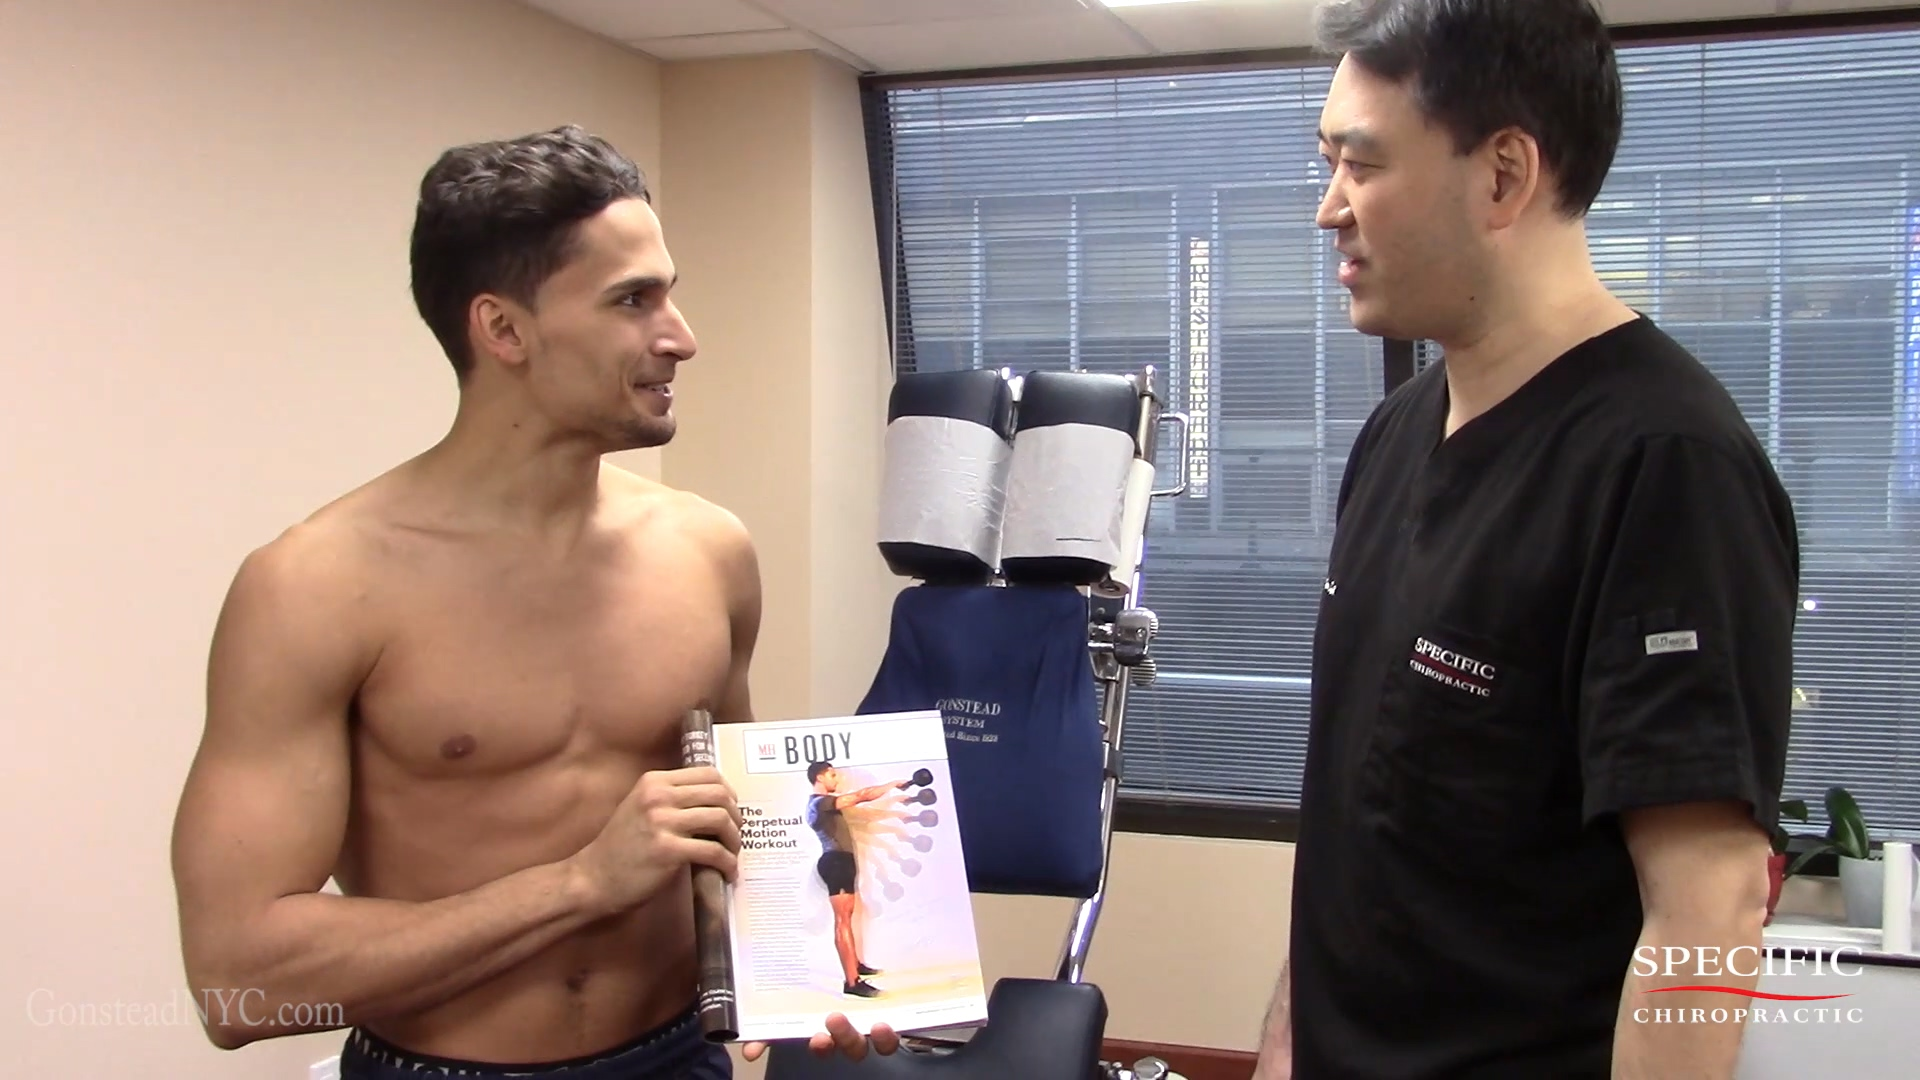 Mens Health Magazine Model shoulder and low back FIXED by Dr Suh Specific Chiropractic